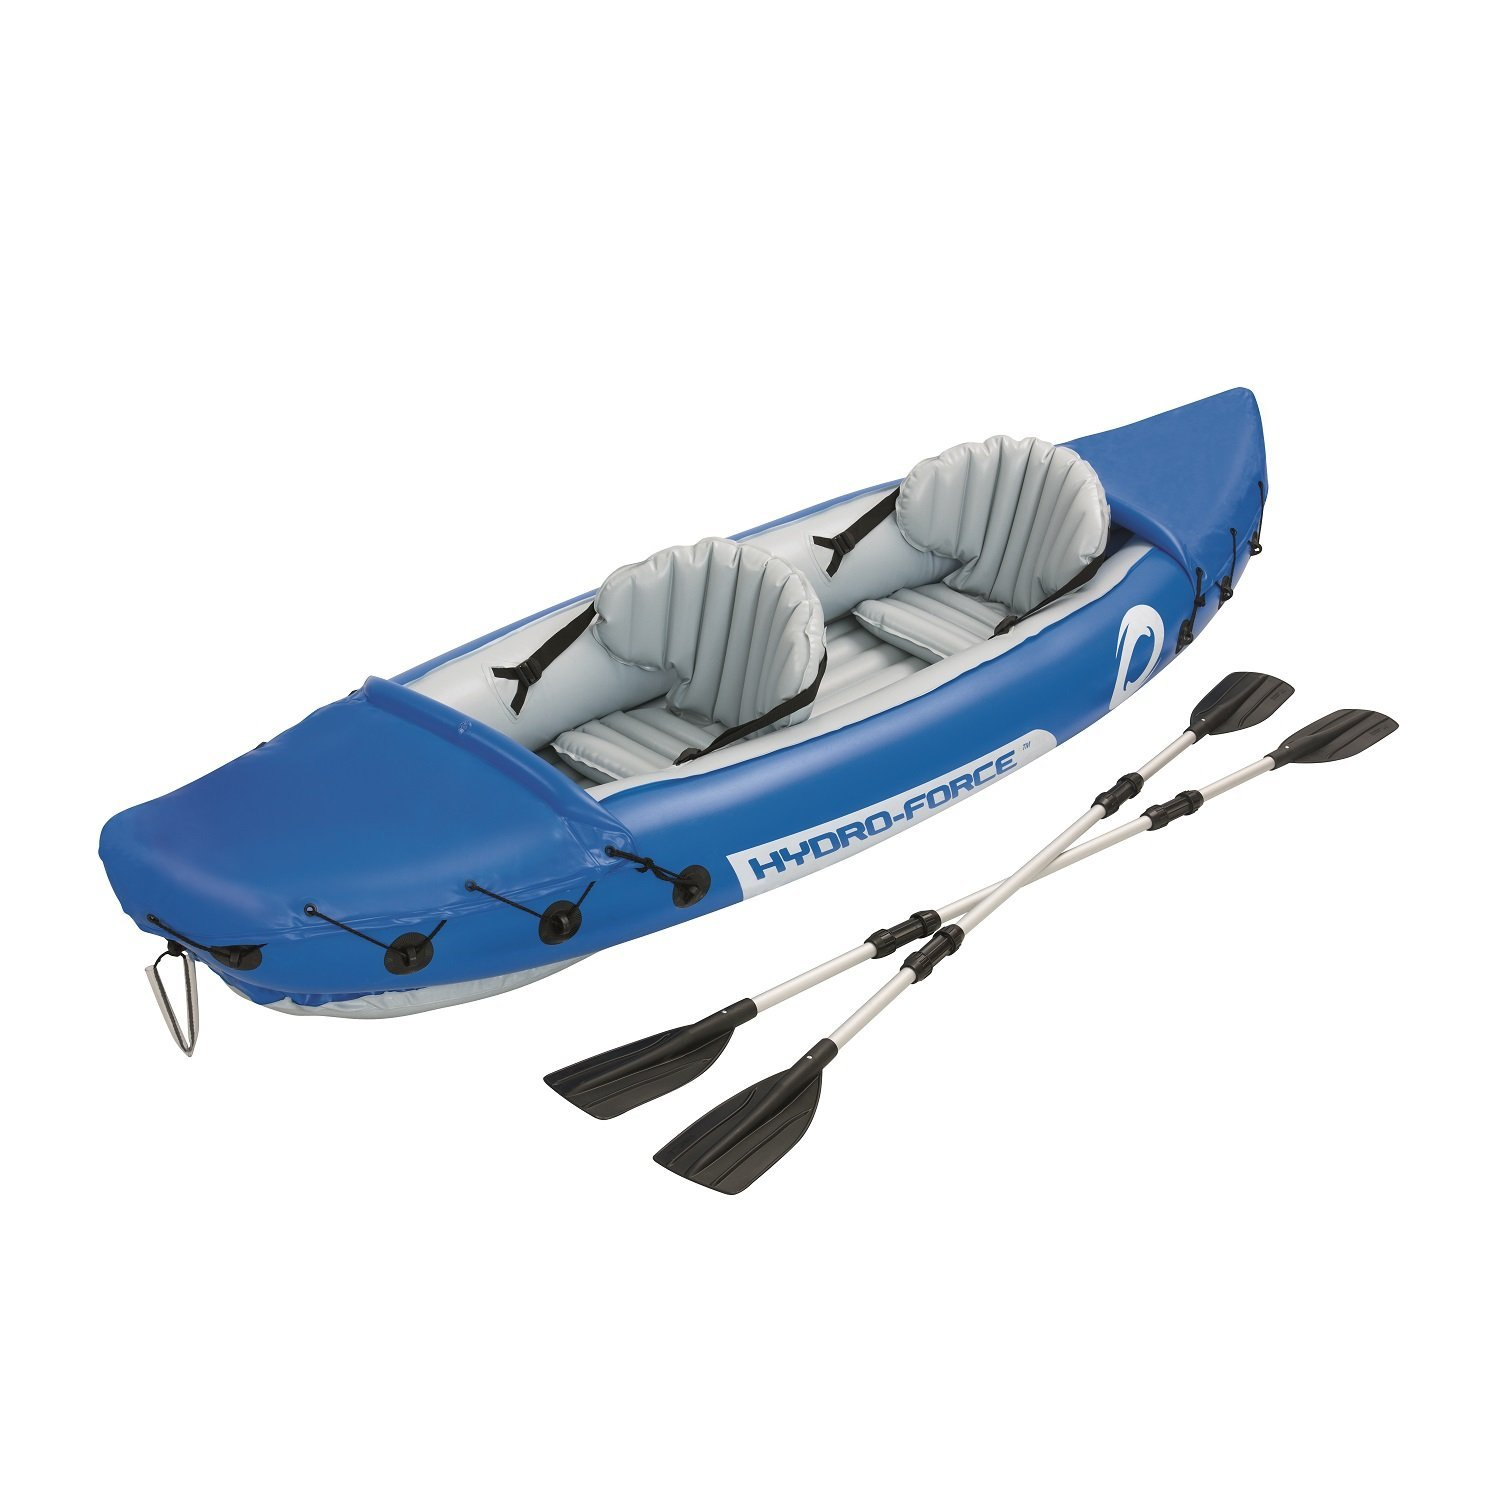 Bestway 126 x 35 Inches Lite-Rapid X2 Inflatable Kayak Float with Oars | 65077E